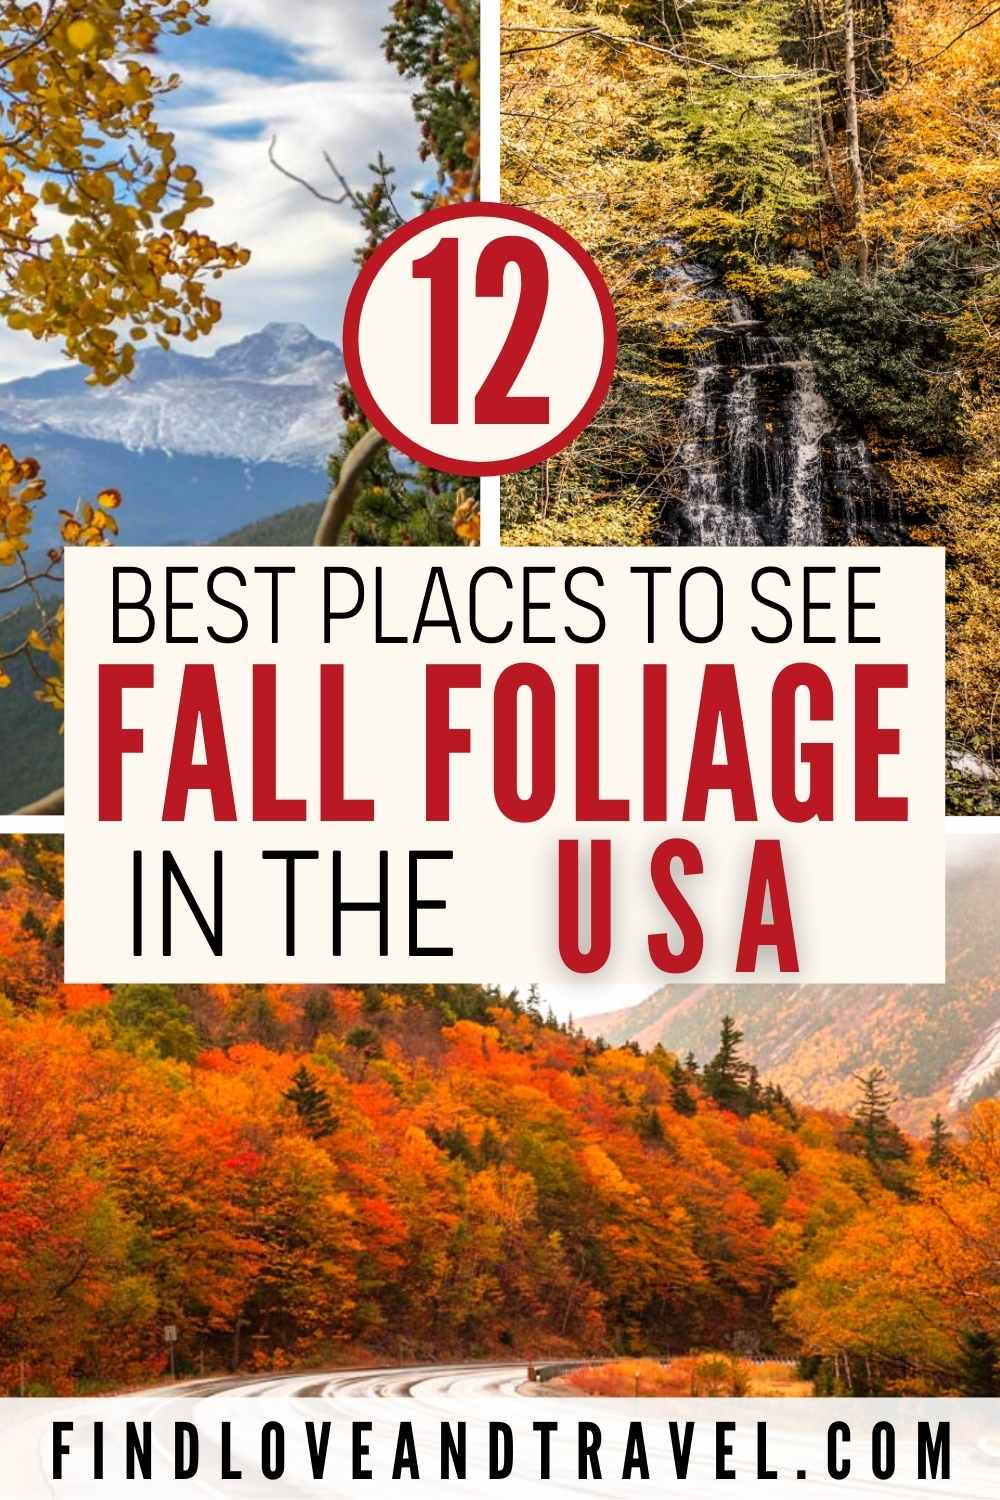 Best places to find fall foliage in the USA - United States fall colors